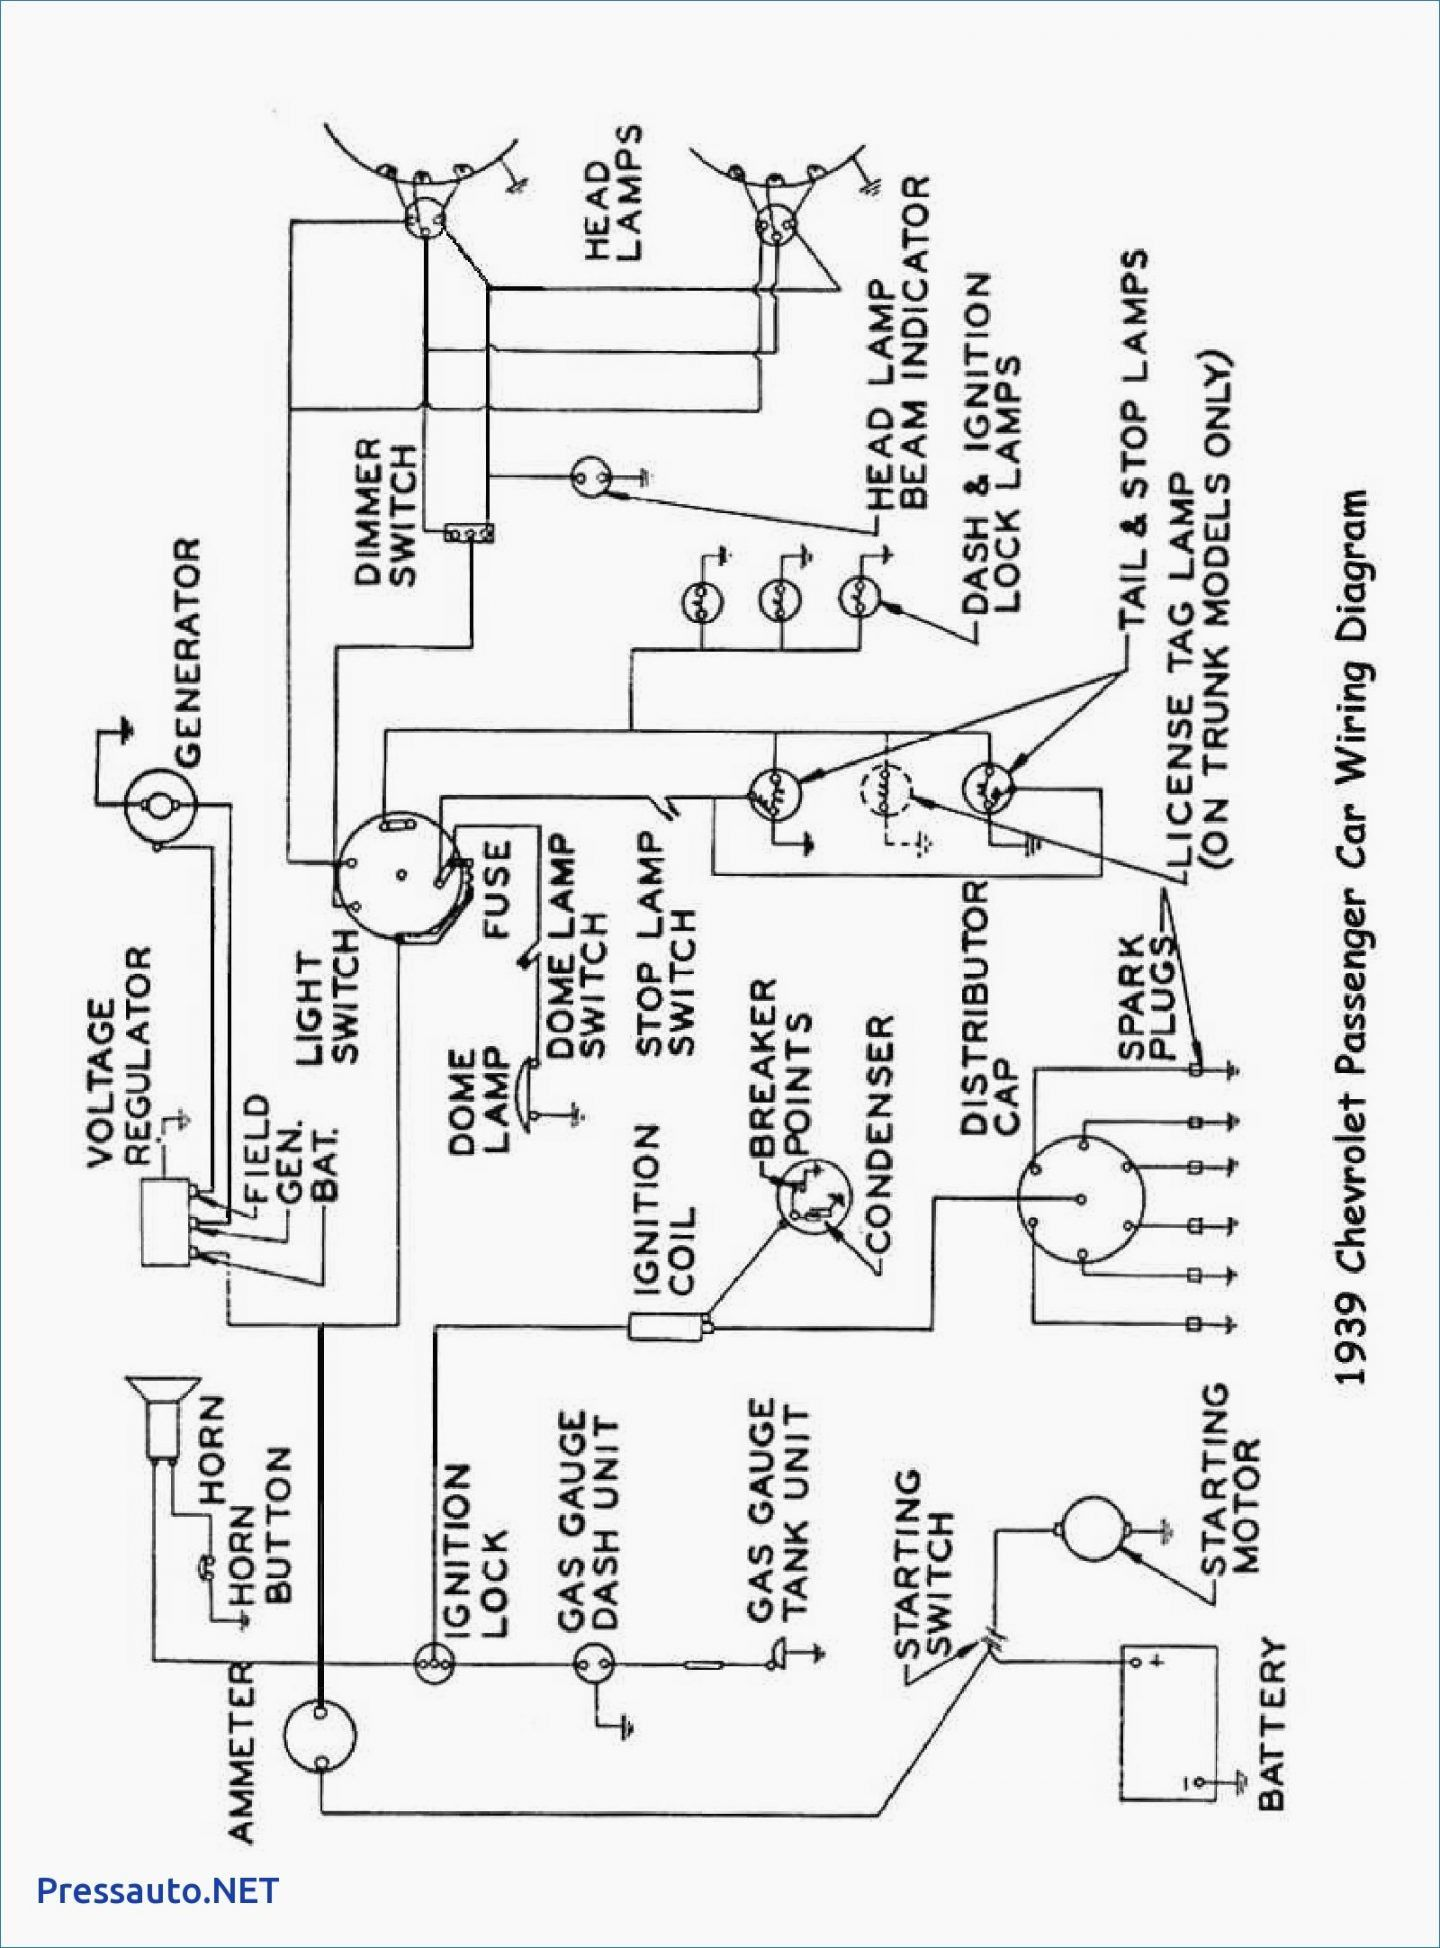 wiring diagram welding machine inspirationa best of pdf circuitwiring diagram welding machine inspirationa best of pdf [ 1440 x 1948 Pixel ]